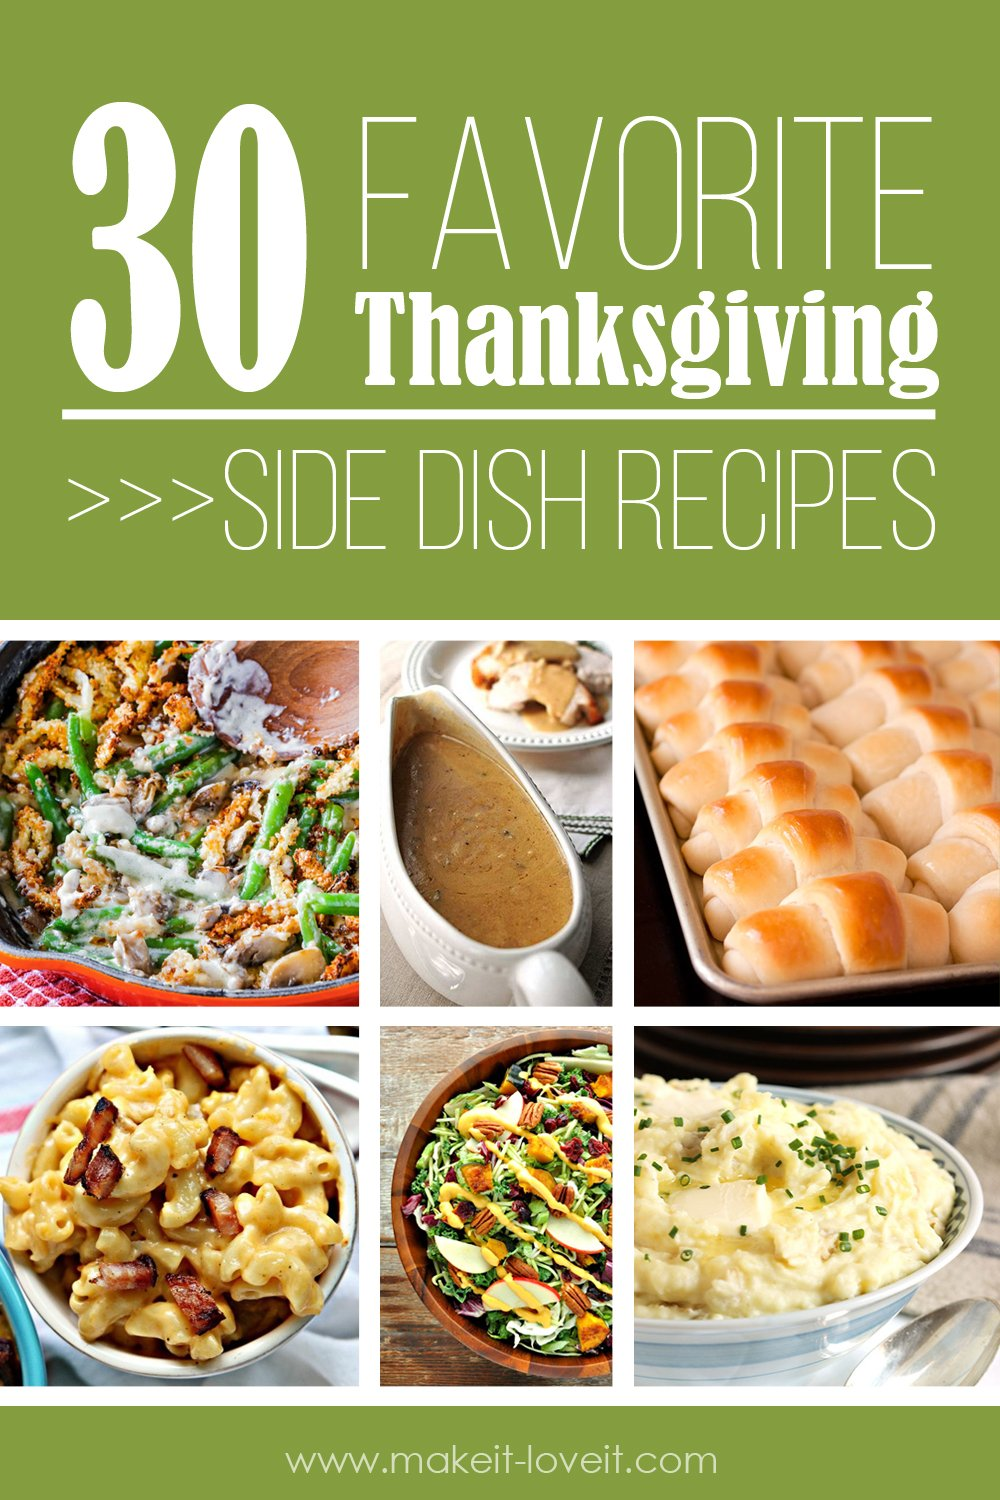 30 favorite thanksgiving side dish recipes